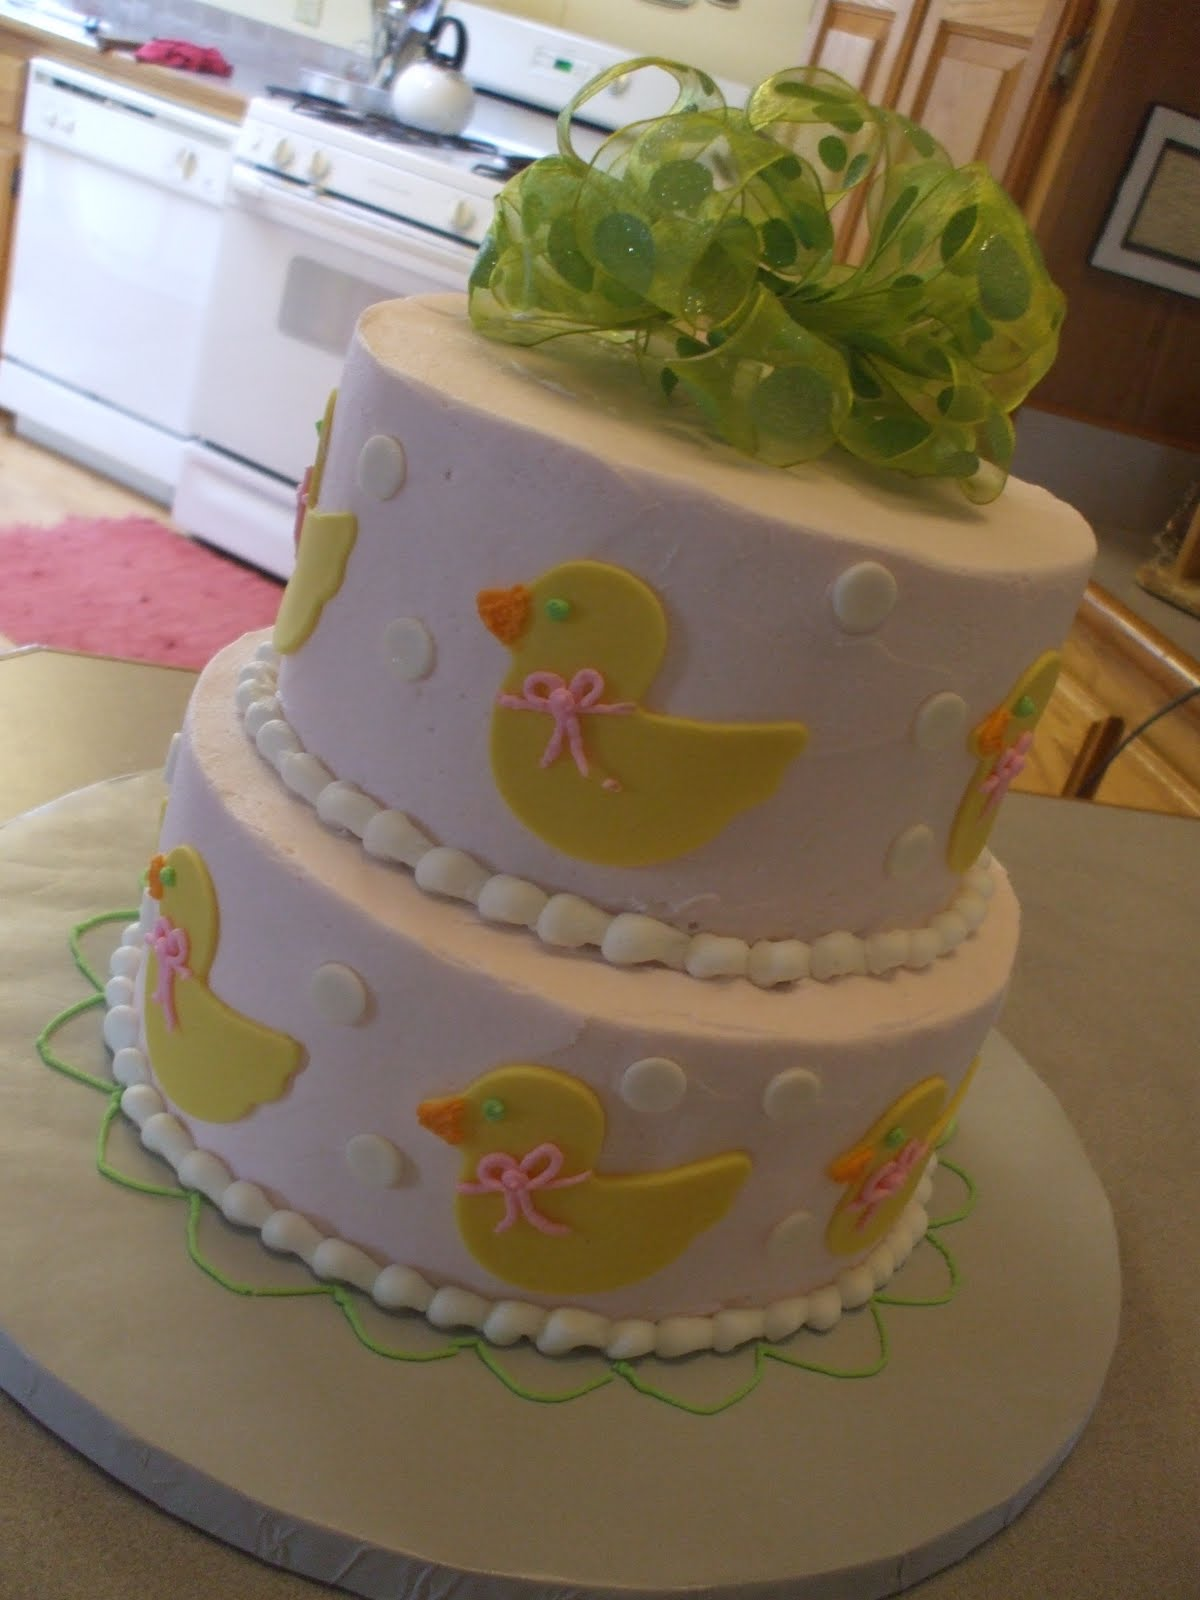 The Simple Cake A Ducky Birthday Cake